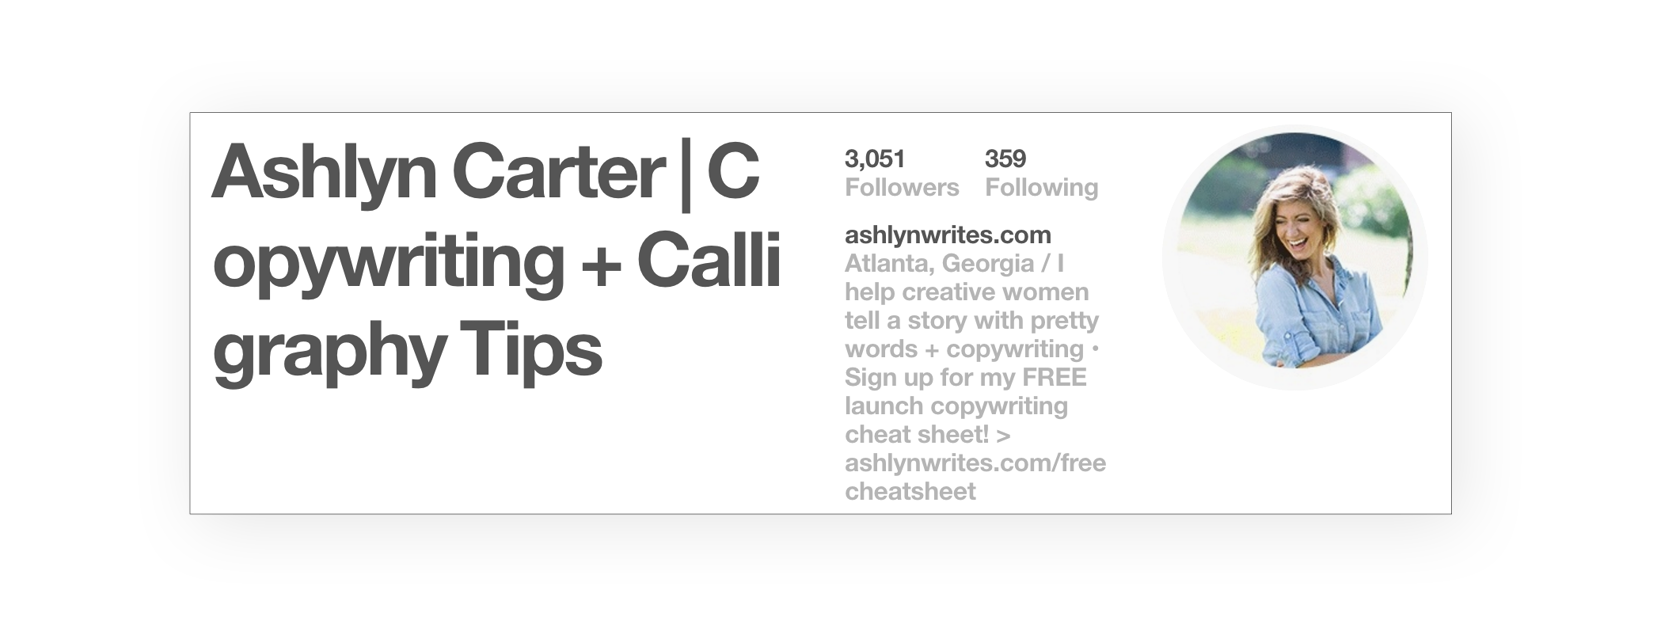 Ashlyn-Carter-Pinterest-Profile-How-to-Grow-Your-Business-with-Pinterest-on-Autopilot